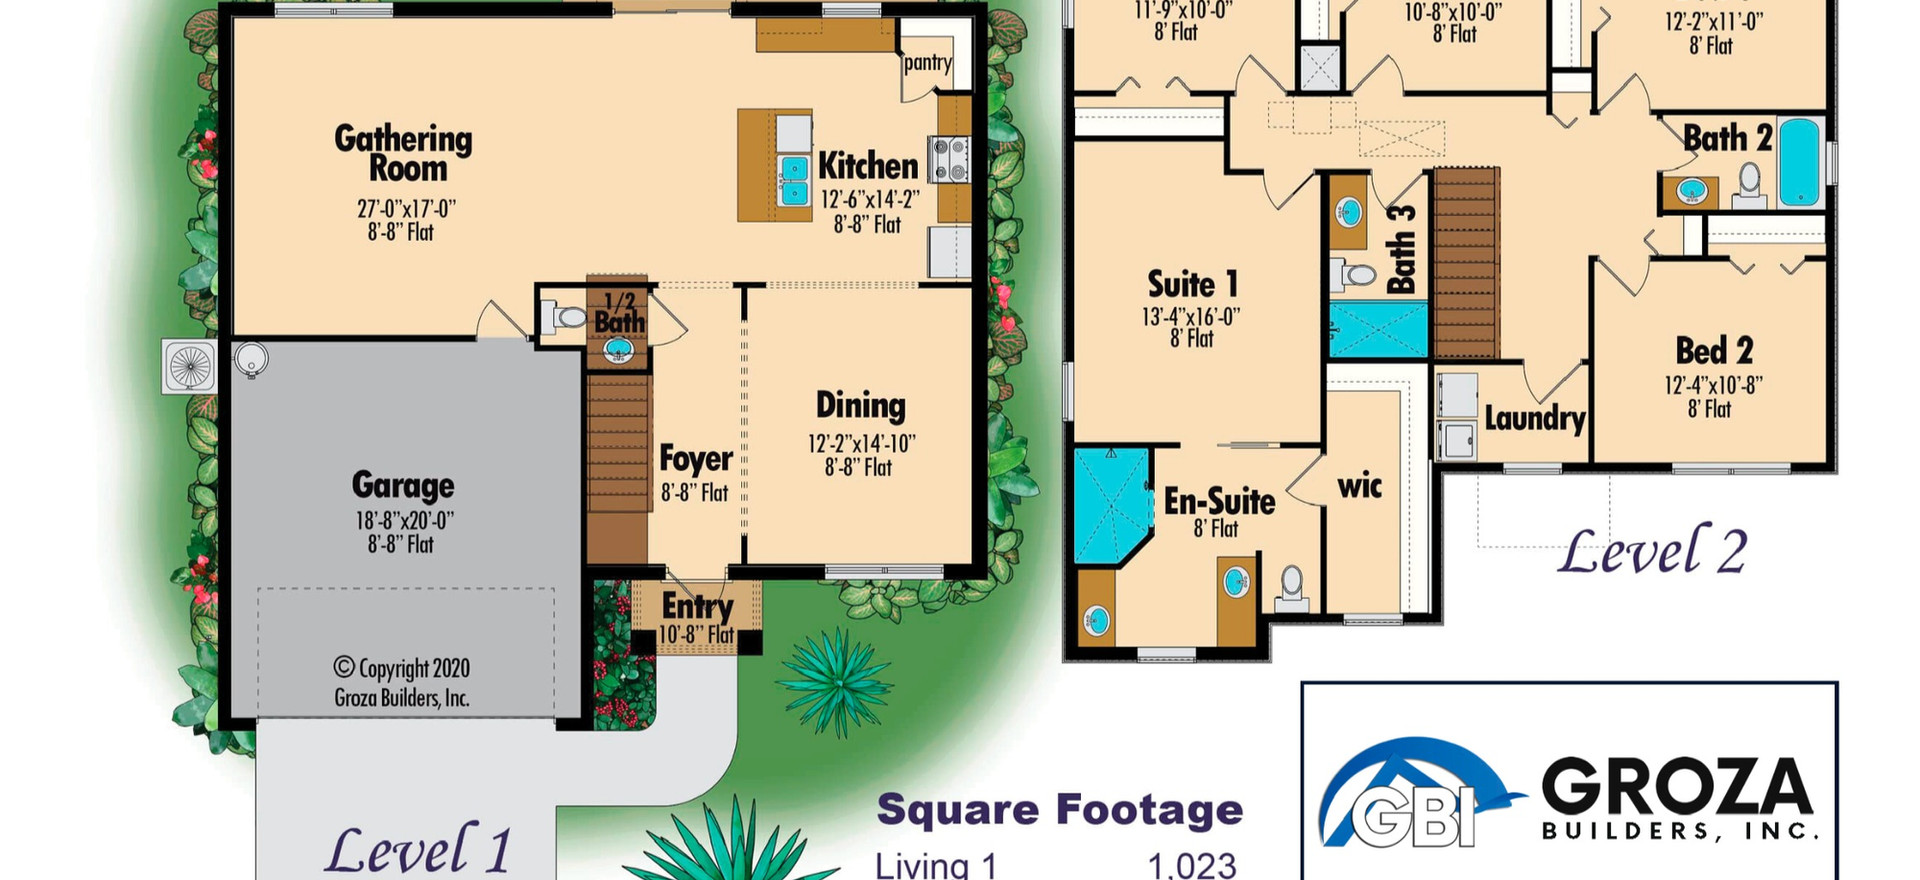 Azalea Floor Plan - Groza Builders Inc.